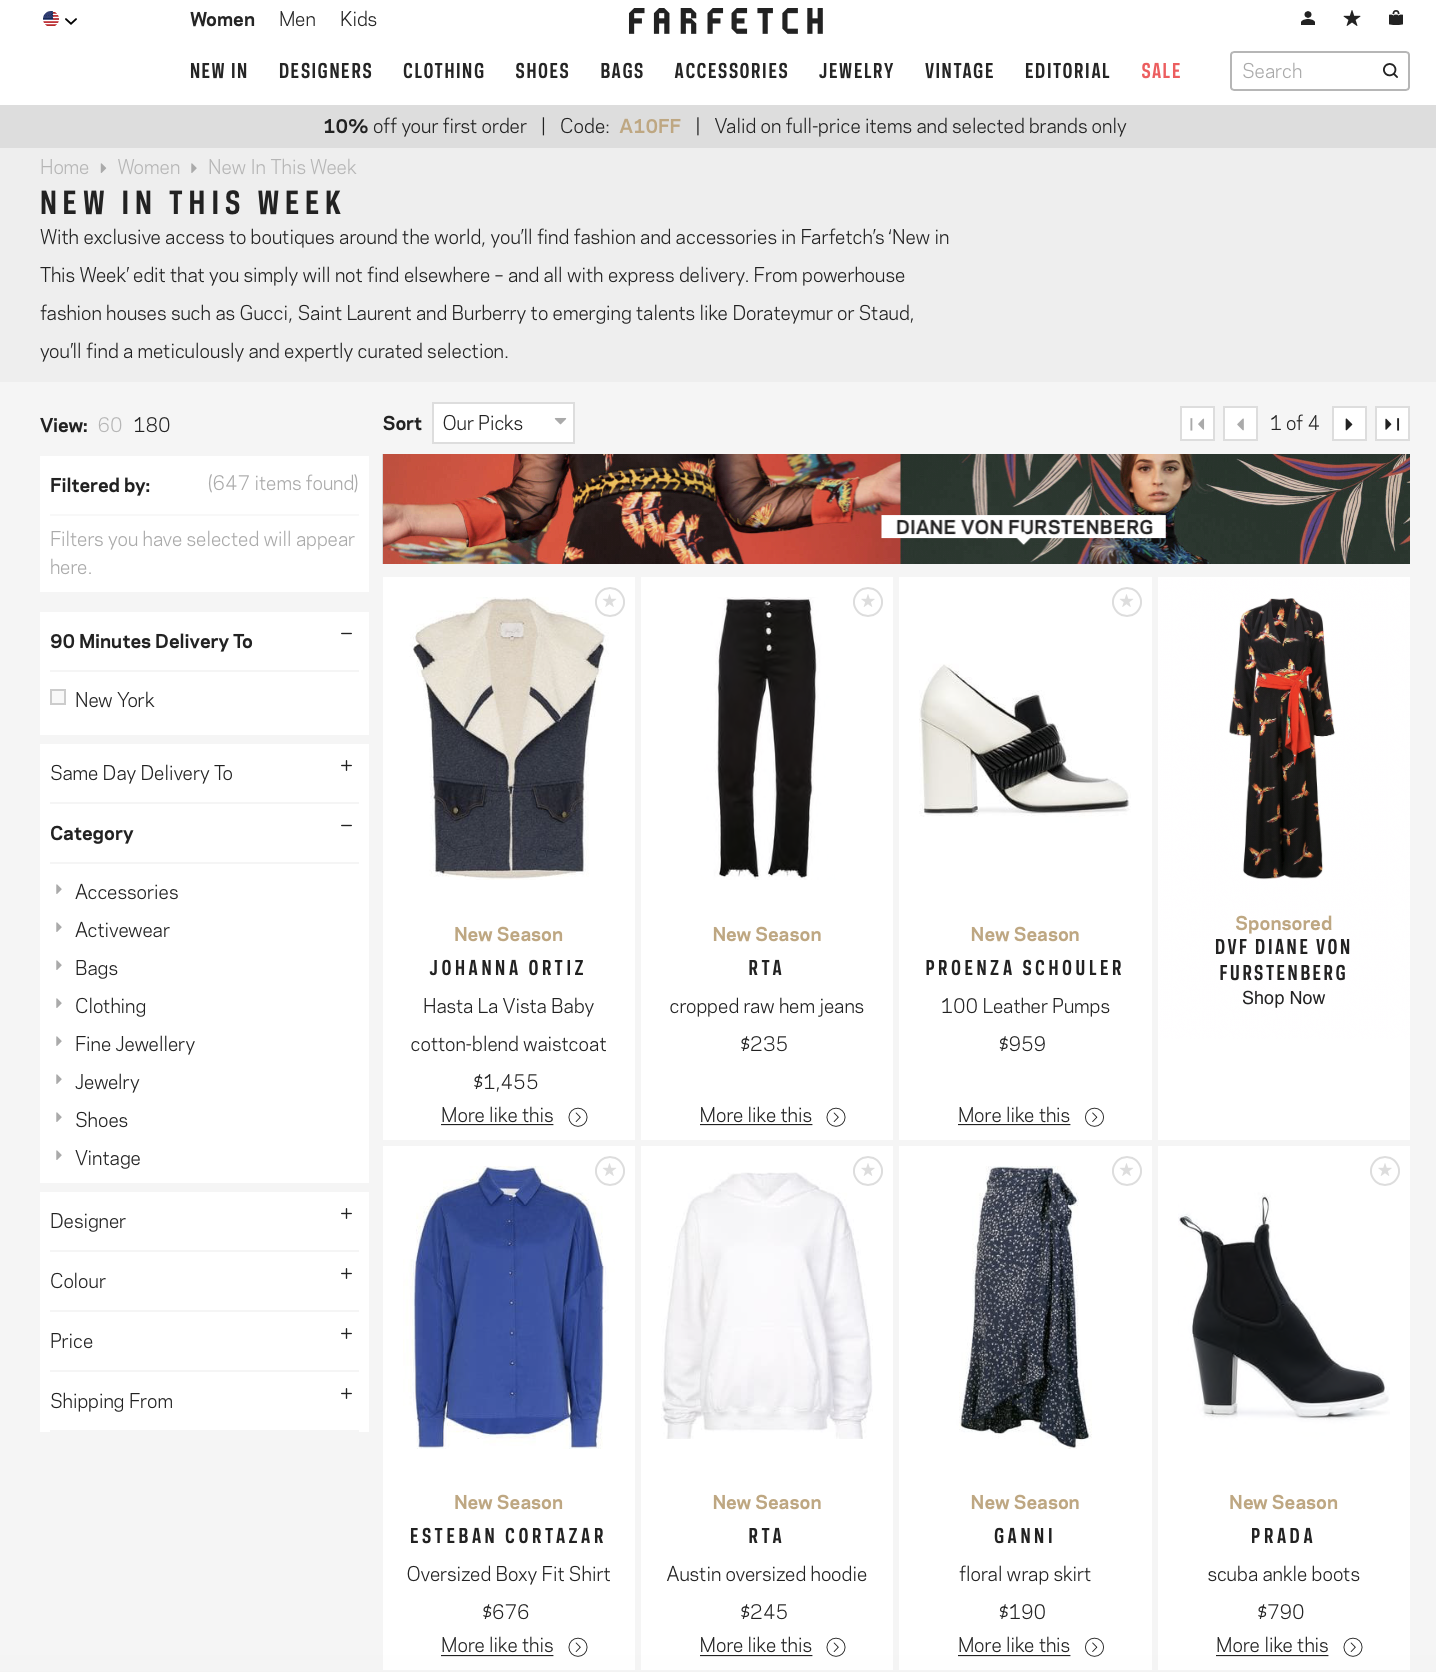 5061b5fa2cda Brands represented on Farfetch's platform include well-known names such as  Gucci and Prada, but also extend to more niche high-end designers and  labels.